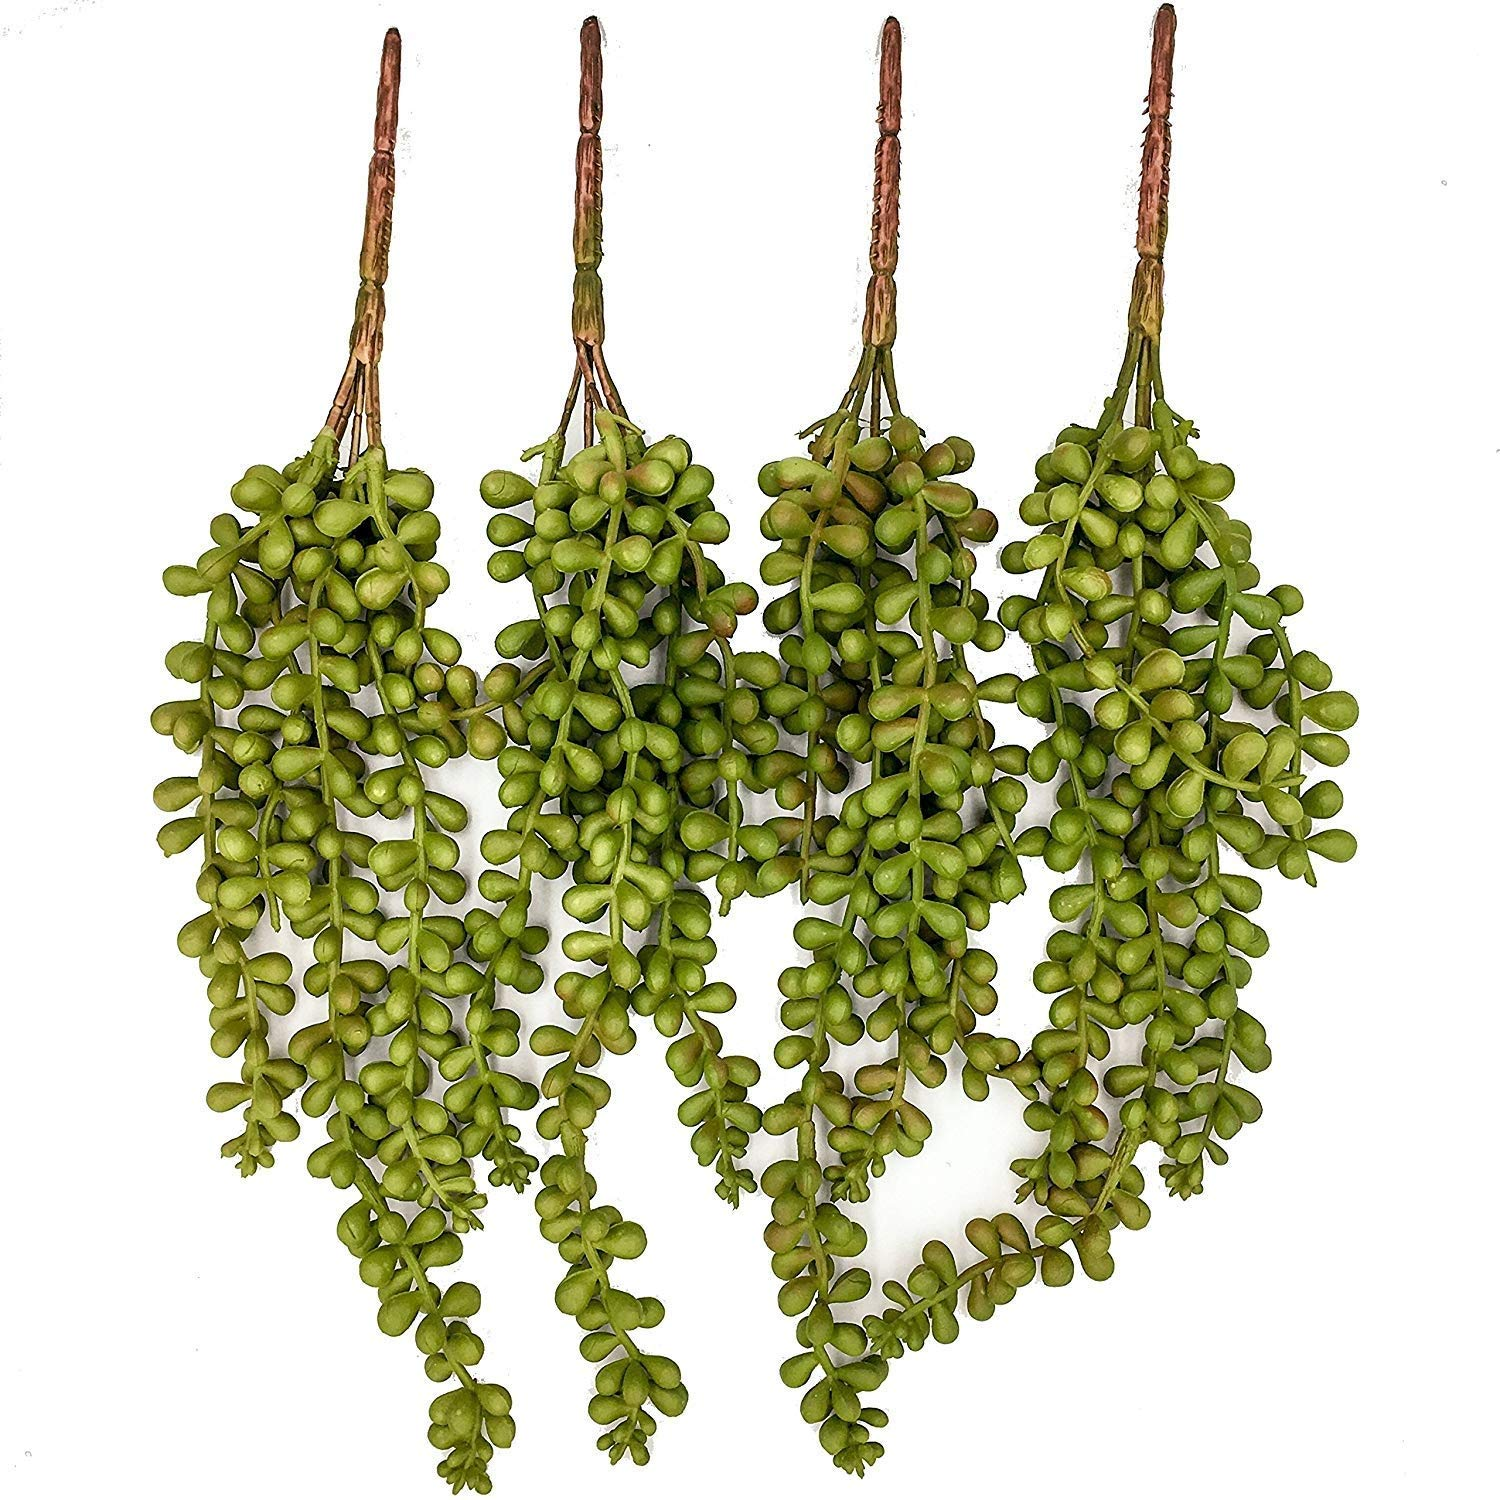 Artificial Succulent Plants 4Pcs Box Set, String of Pearls, Lovers Tears 13.3 Inch Hanging Plants for Home, Office, Cafe, Restaurant, Wedding, Arts Craft Project by Superior Succulents